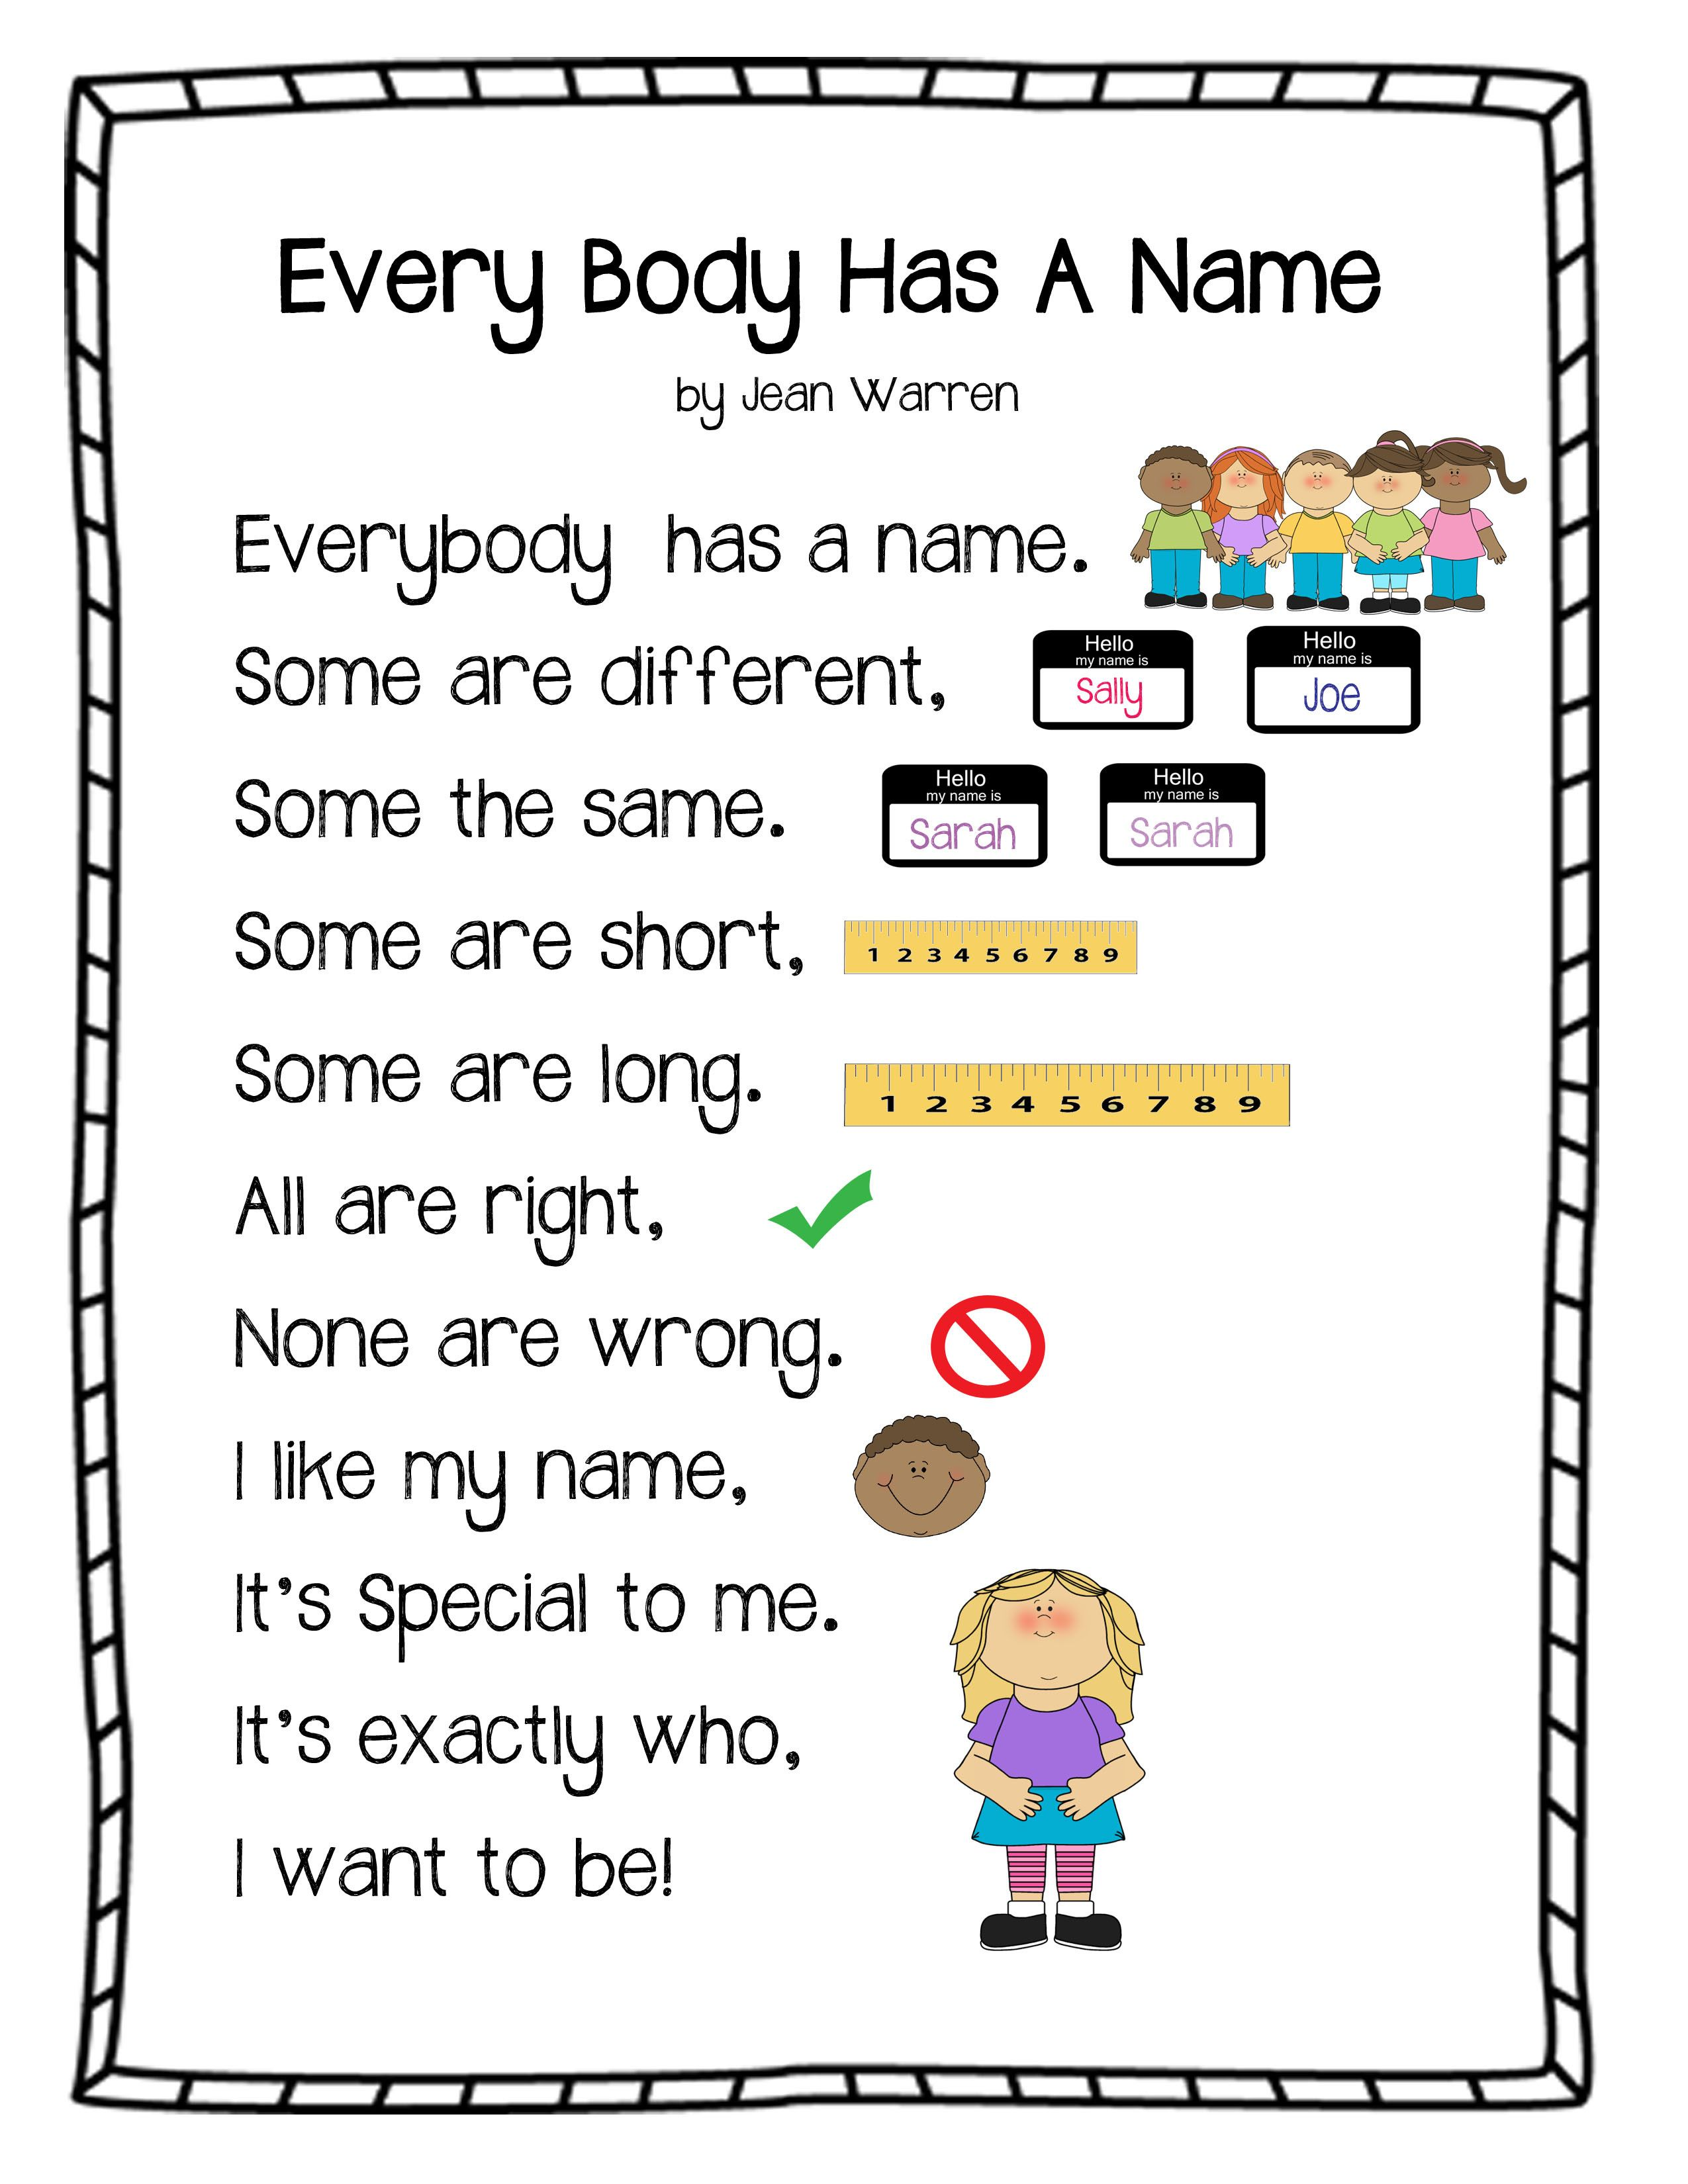 Every Body Has A Name Poem From Play Learn Love